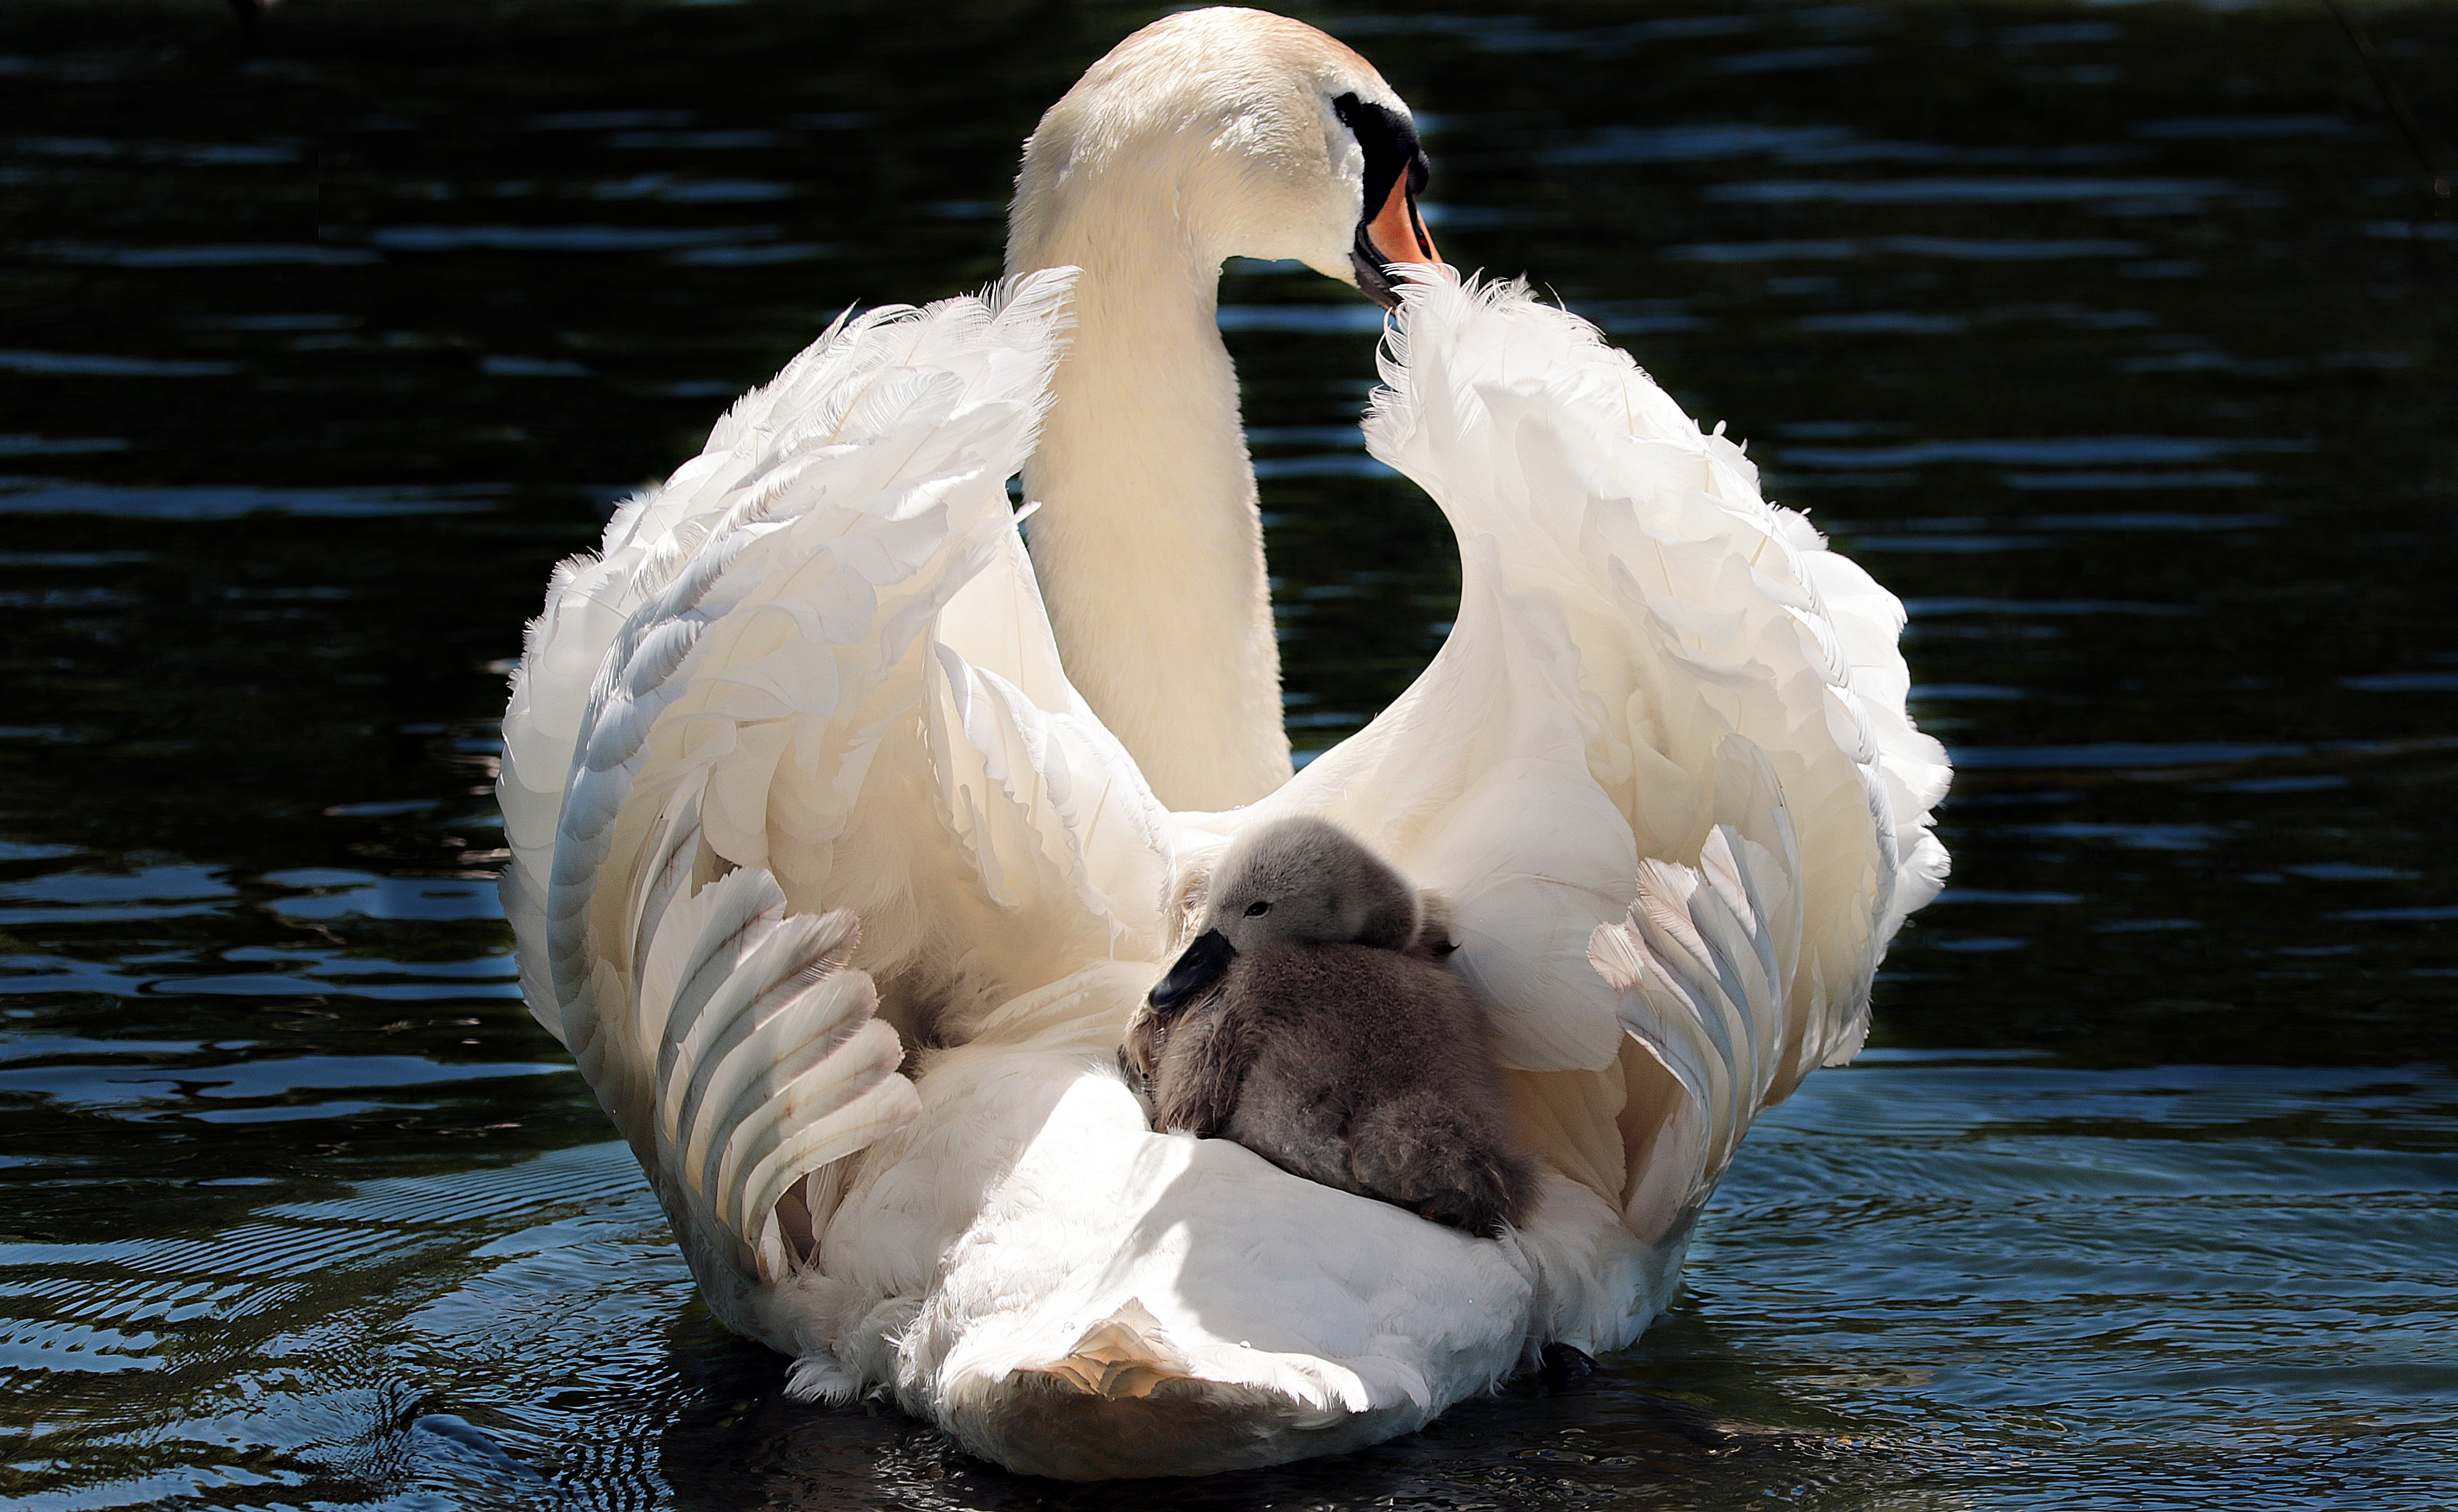 The trumpeter swan (Cygnus buccinator) is a species of swan found in North weeny.tk heaviest living bird native to North America, it is also the largest extant species of waterfowl with a wingspan that may exceed 10 ft ( m). It is the American counterpart and a close relative of the whooper swan (Cygnus cygnus) of Eurasia, and even has been considered the same species by some authorities.